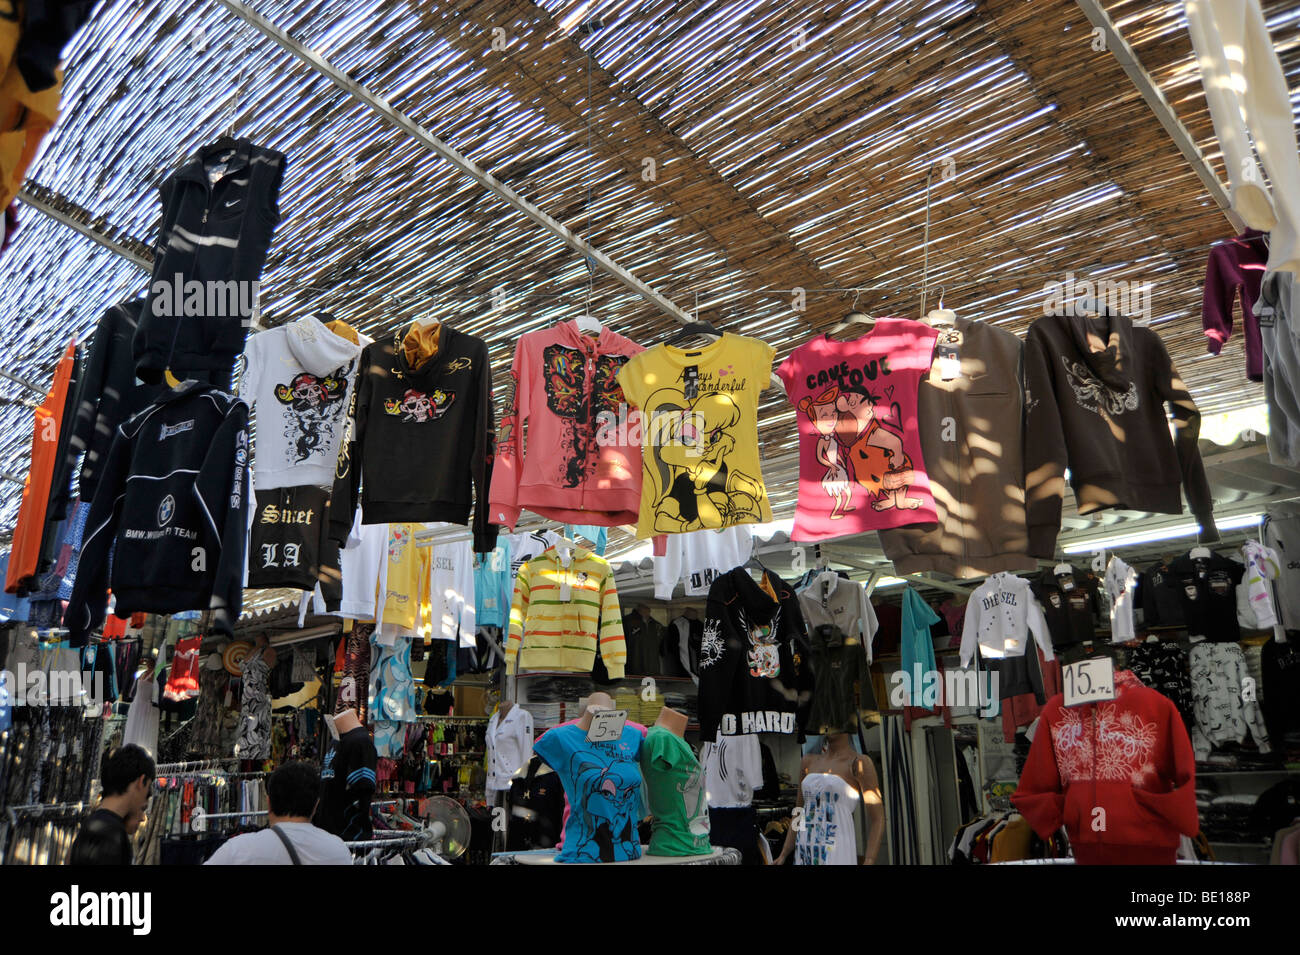 Billige Klamotten Bazaar With Faked Clothes Near Kusadasi Turkey Stock Photo